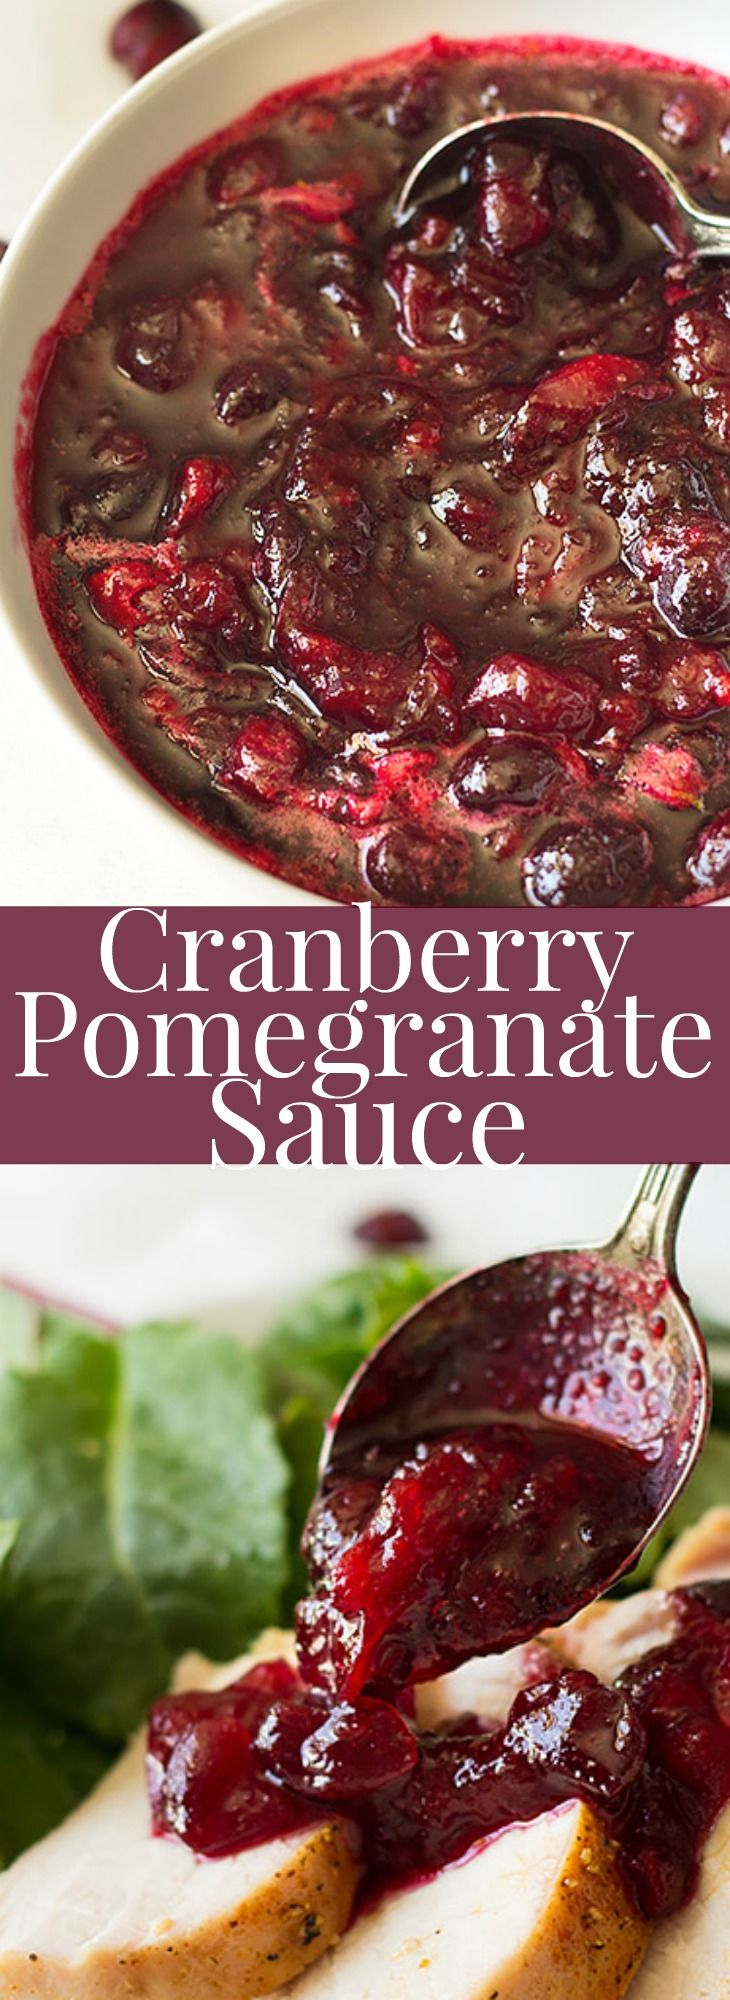 This easy Cranberry Pomegranate Sauce is a simple recipe made in about 15 minutes! | www.countrysidecravings.com